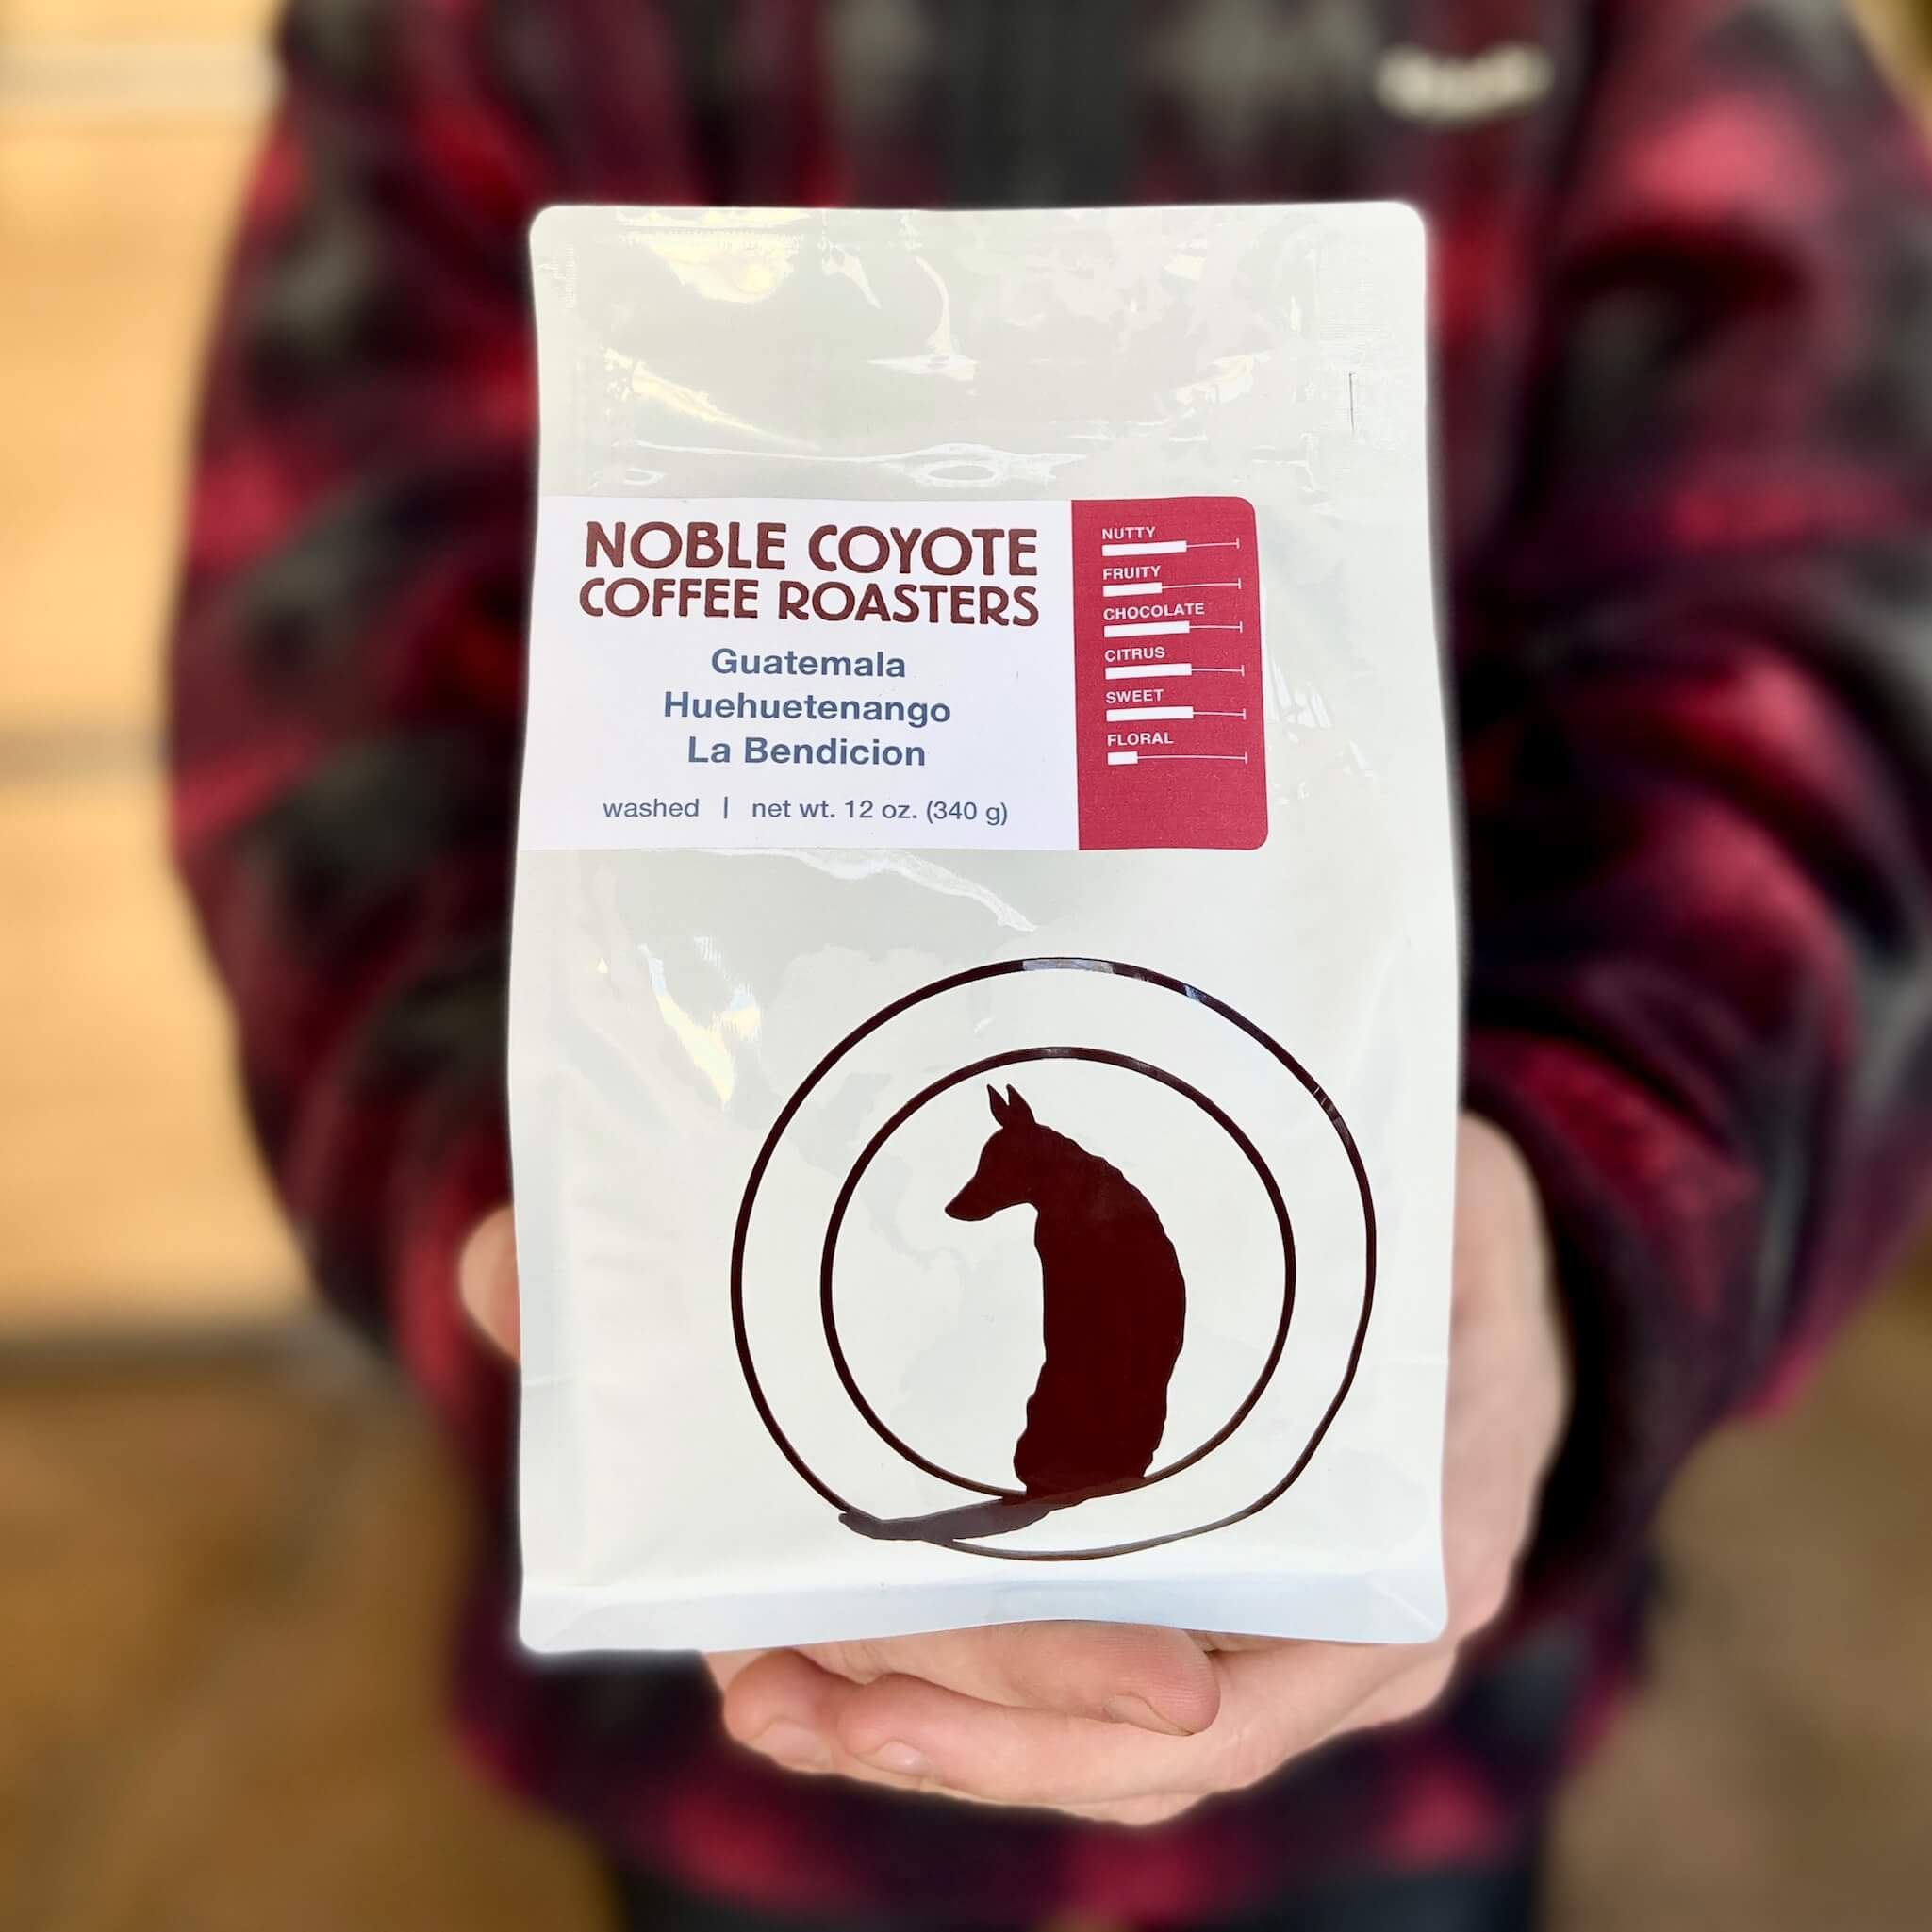 Guatemala La Bendicion from Noble Coyote Coffee Roasters